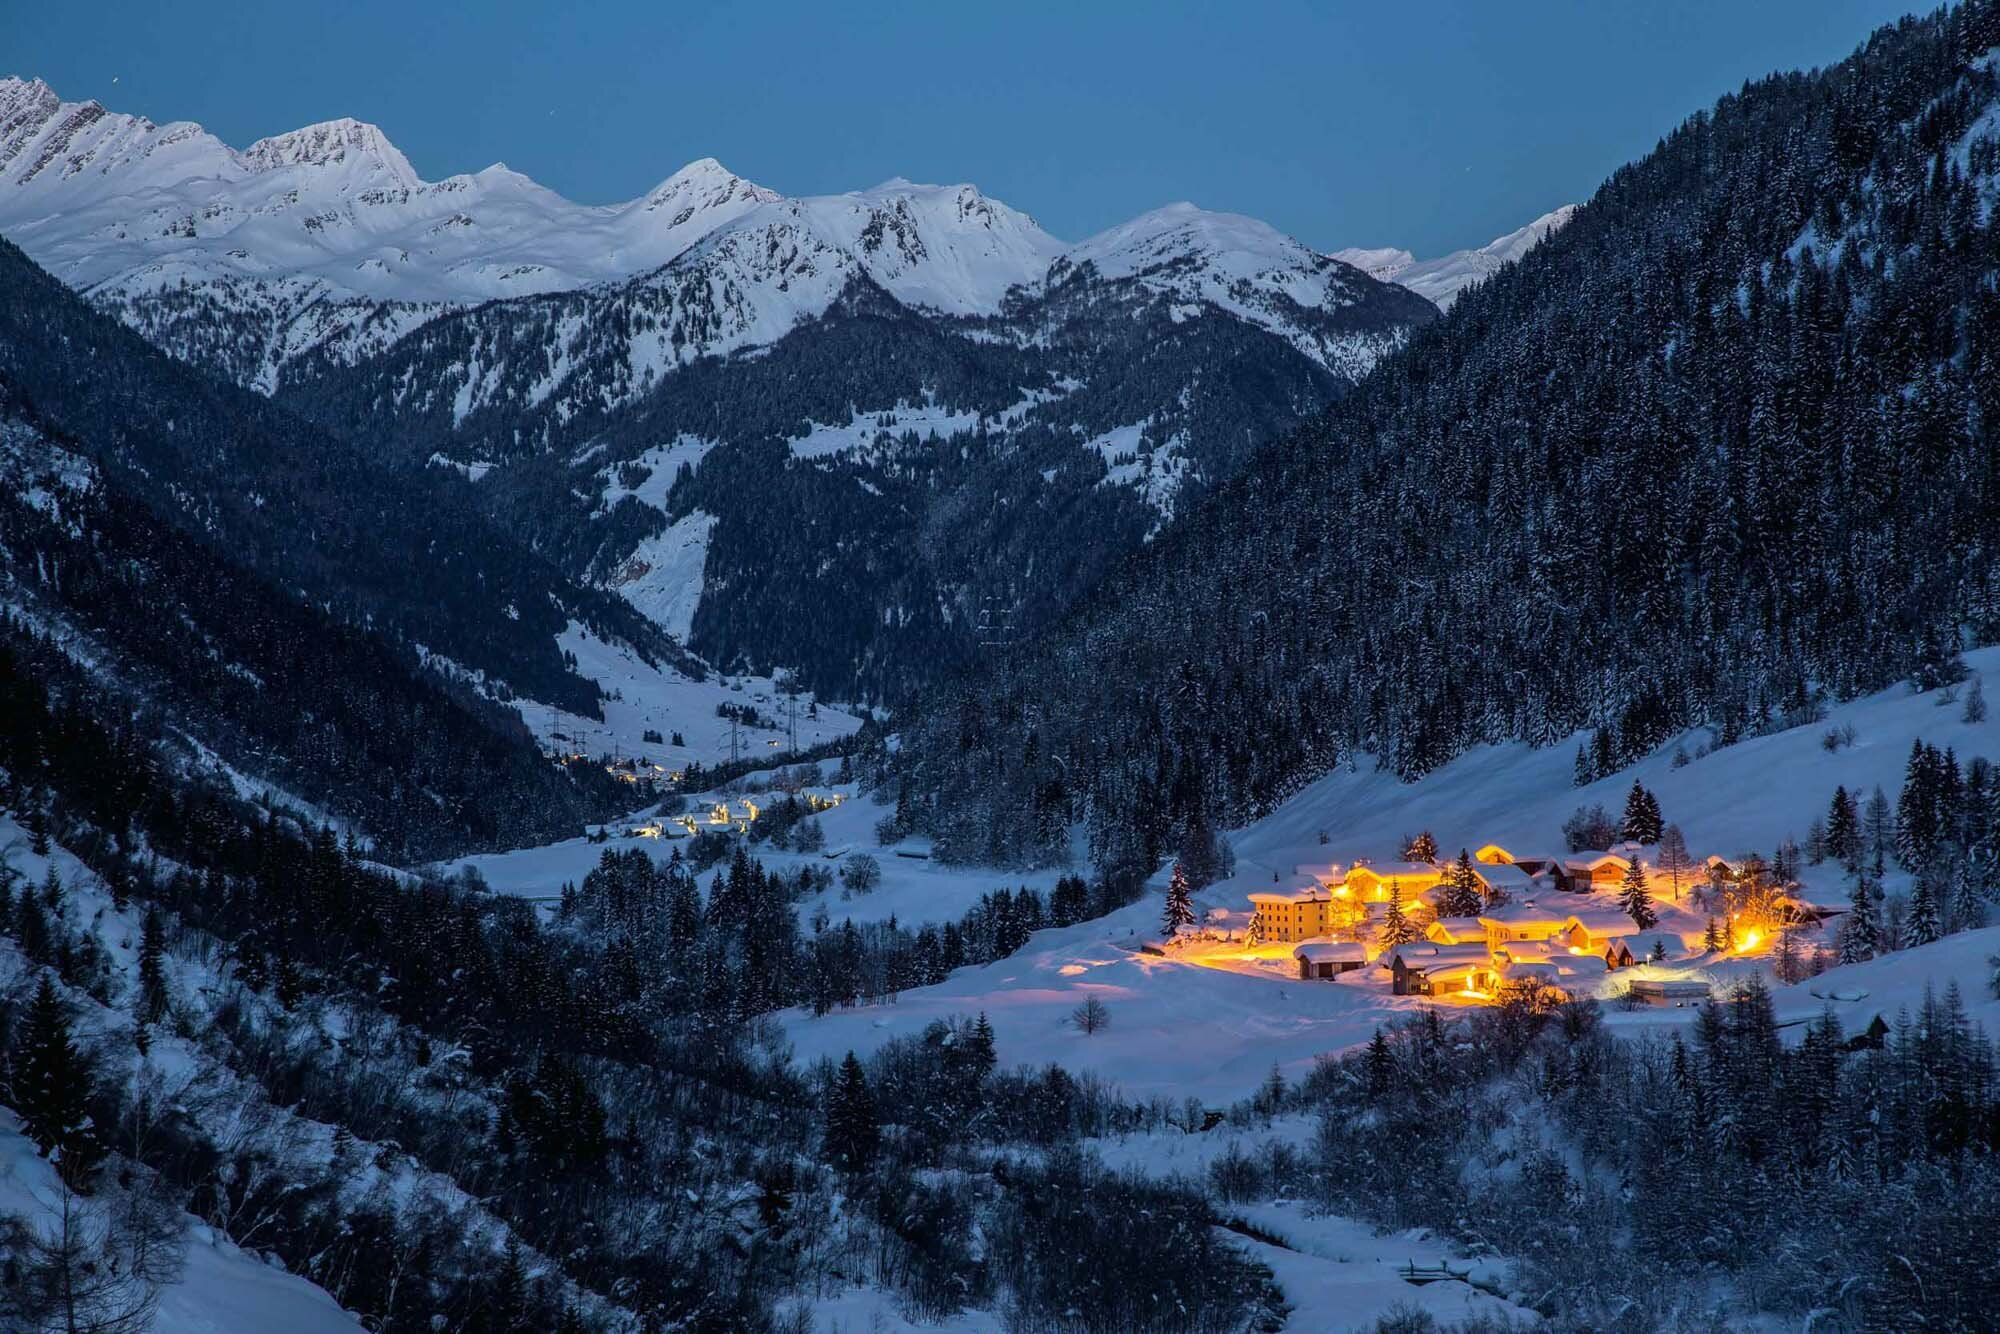 Nightfall over the snowy Ossasco, Bedretto valley. Copyright by: Switzerland Tourism